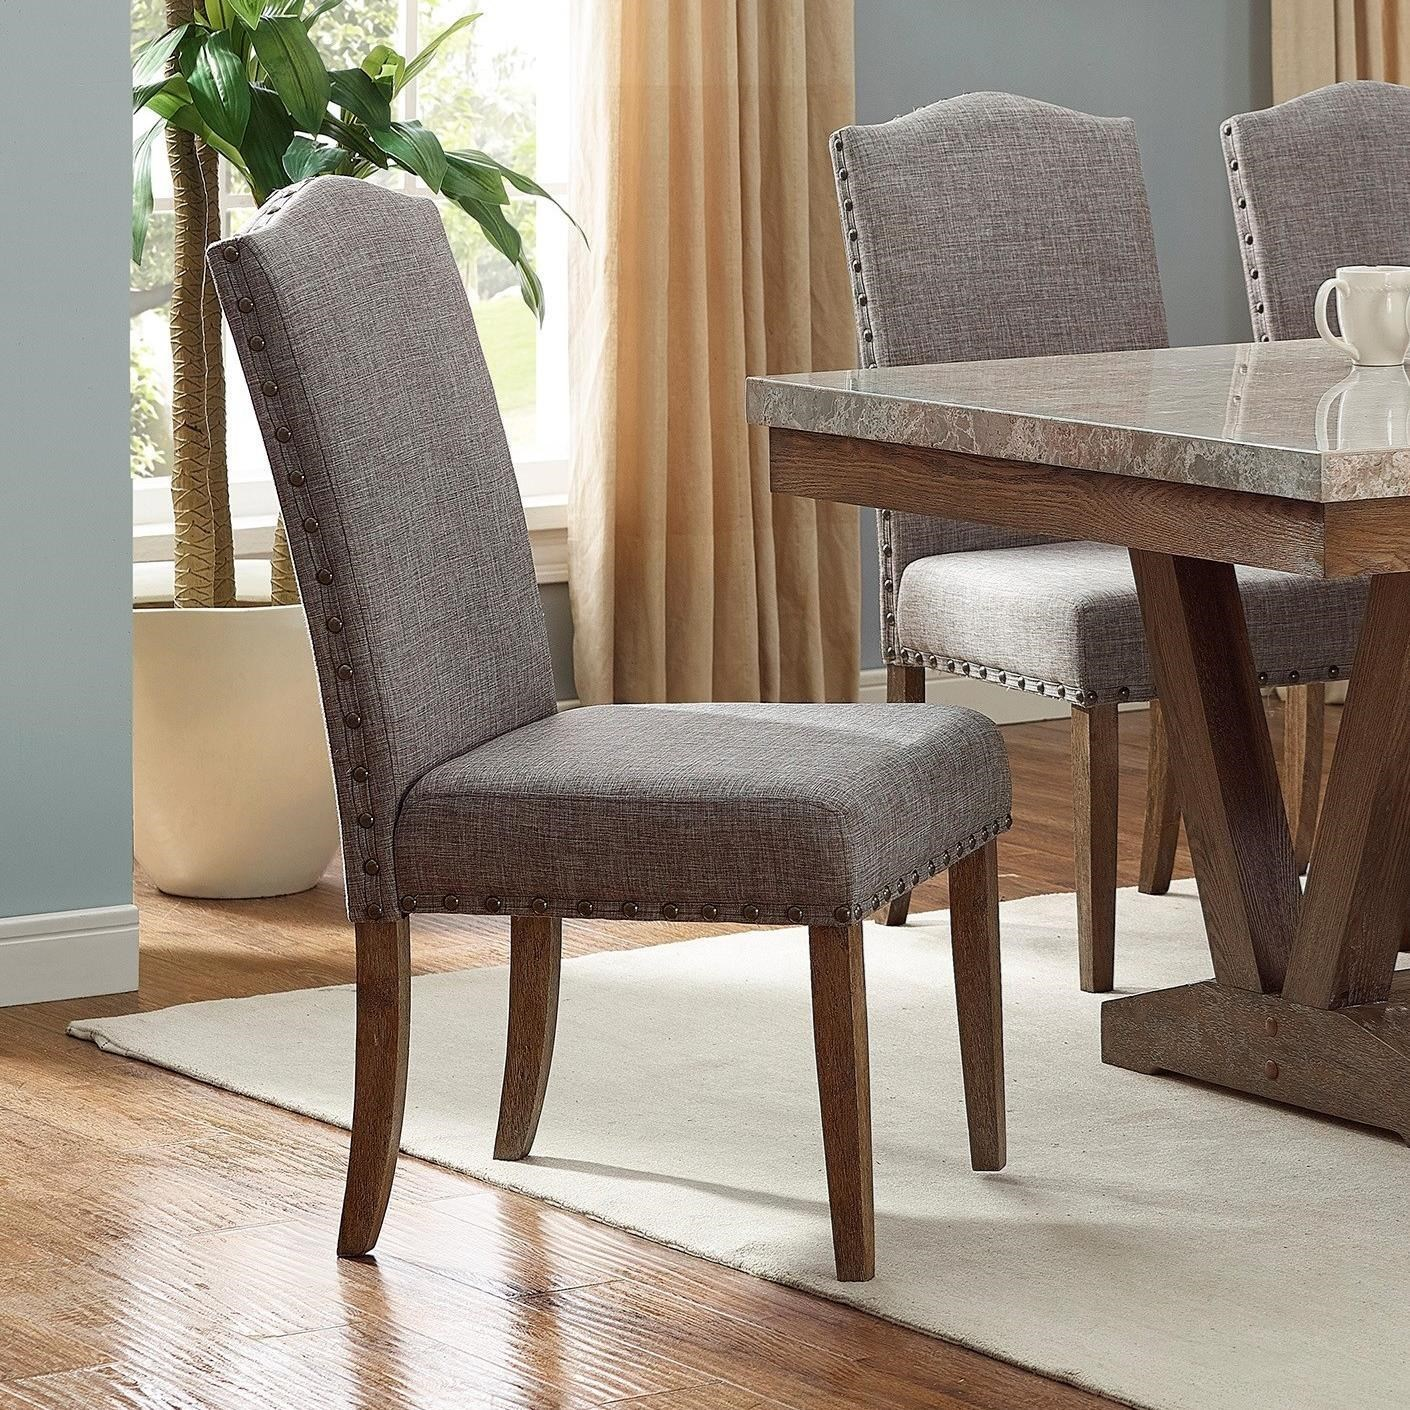 Vesper Dining Side Chair by Crown Mark at Northeast Factory Direct